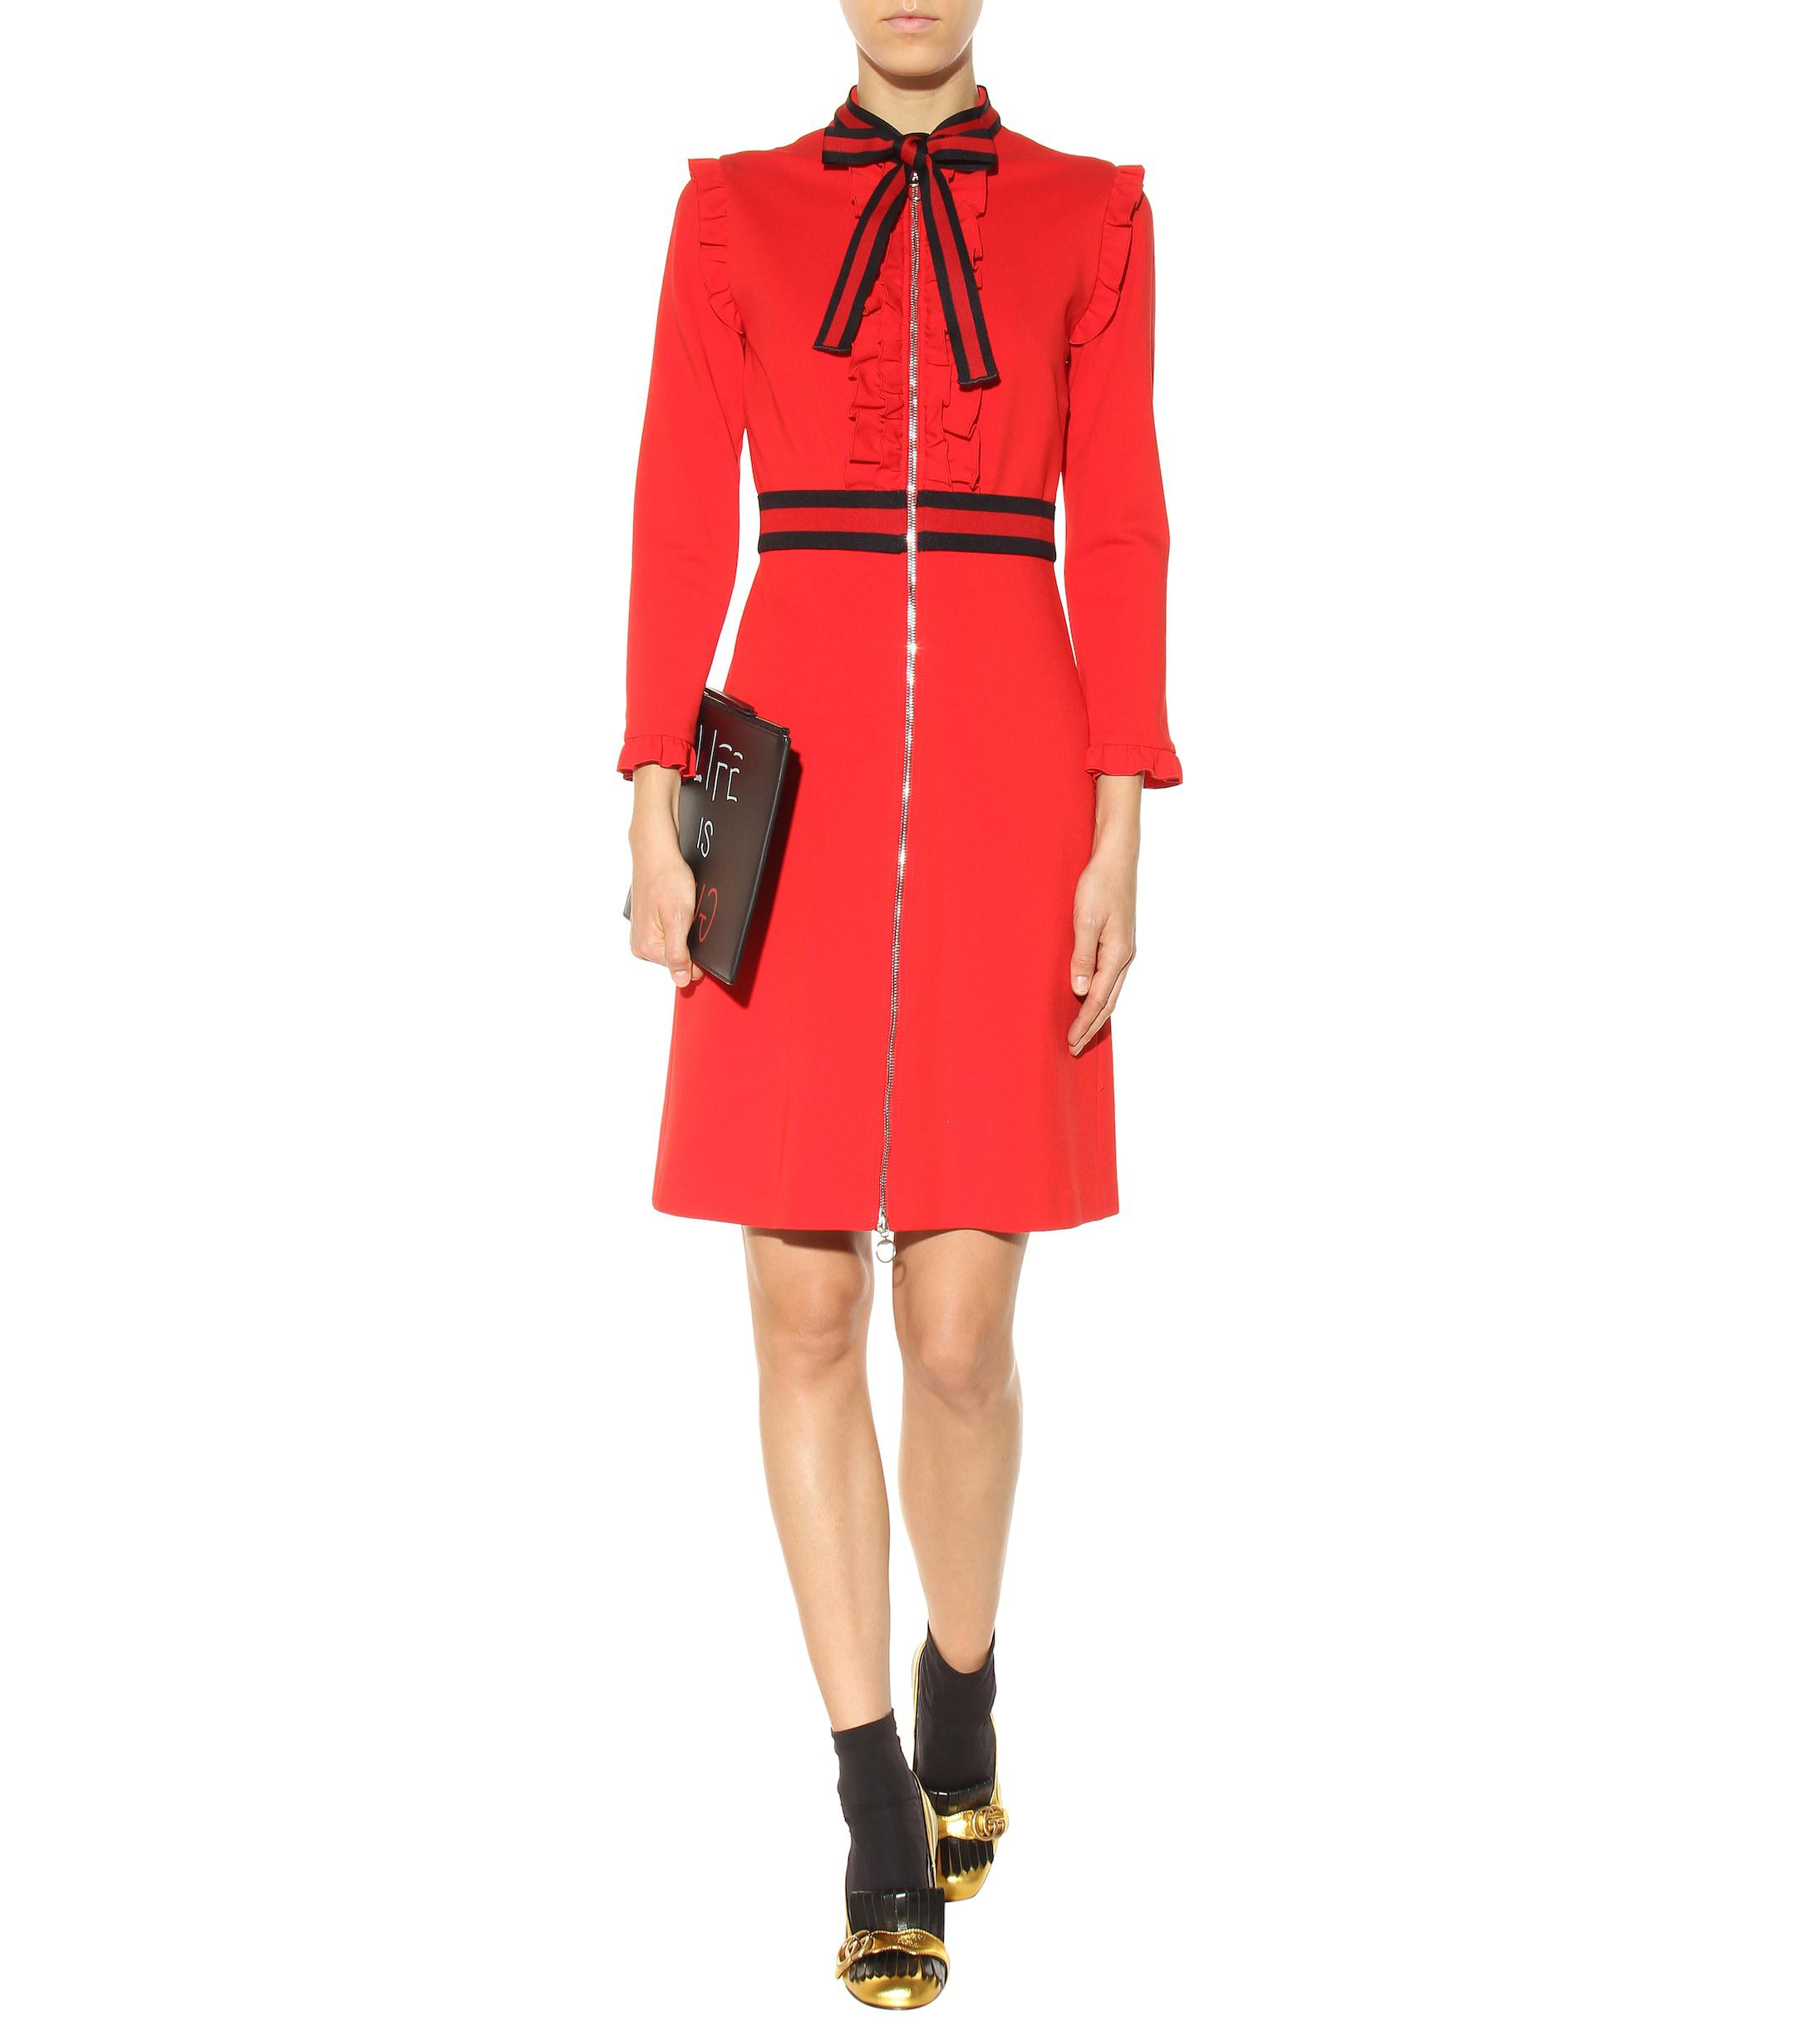 0d871577285 Gucci - Red Crêpe-jersey Dress - Lyst. View fullscreen